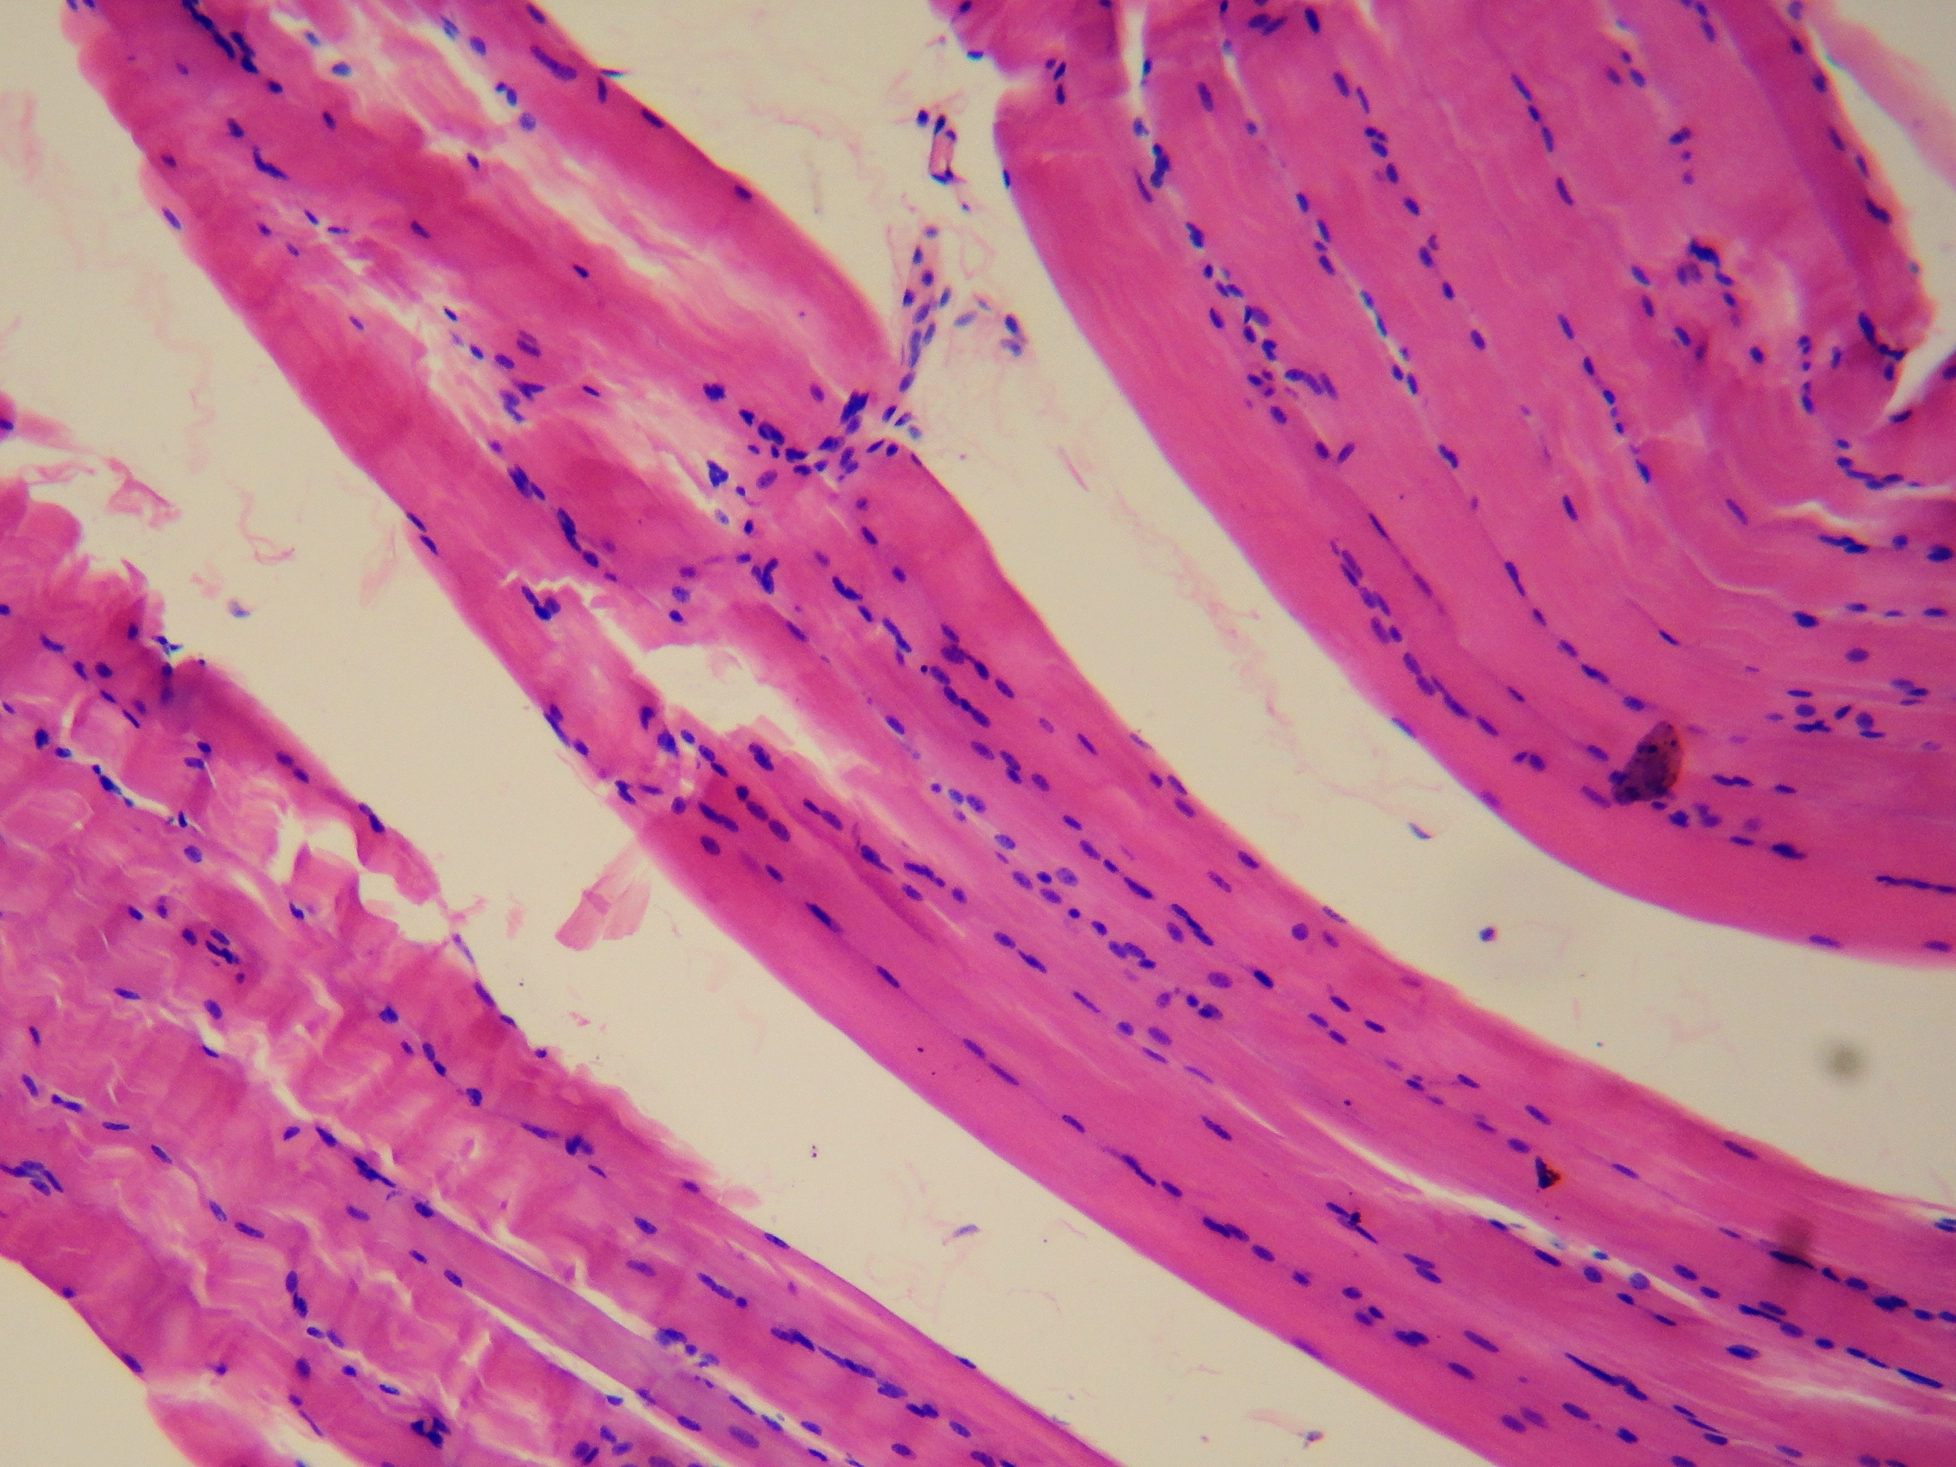 File:Smooth muscle tissue.jpg - Wikimedia Commons